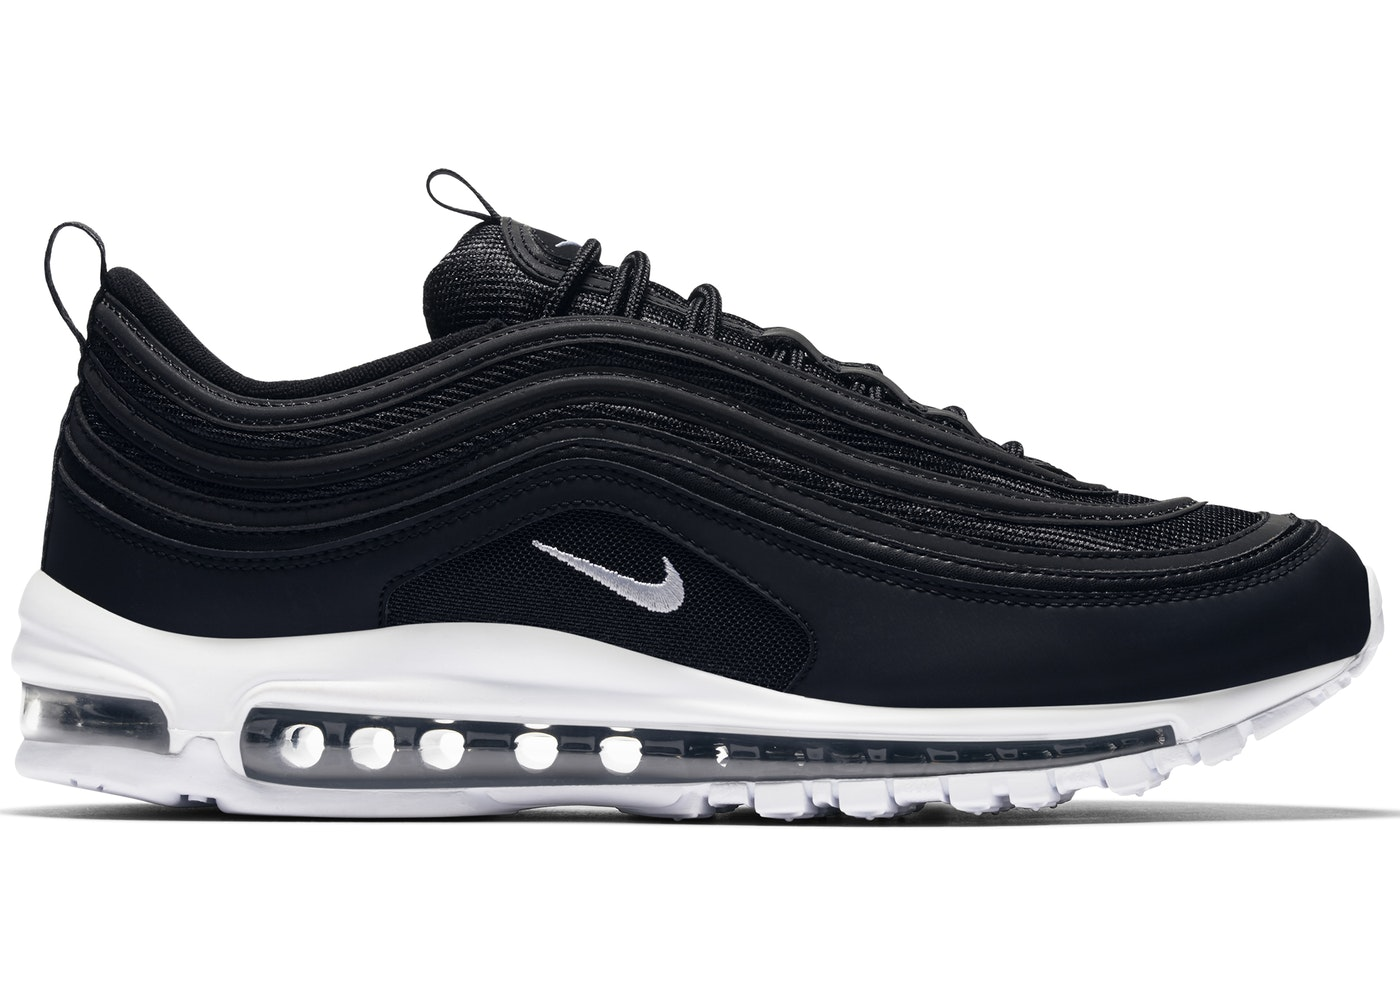 Meilleur qualité air max 97 black white